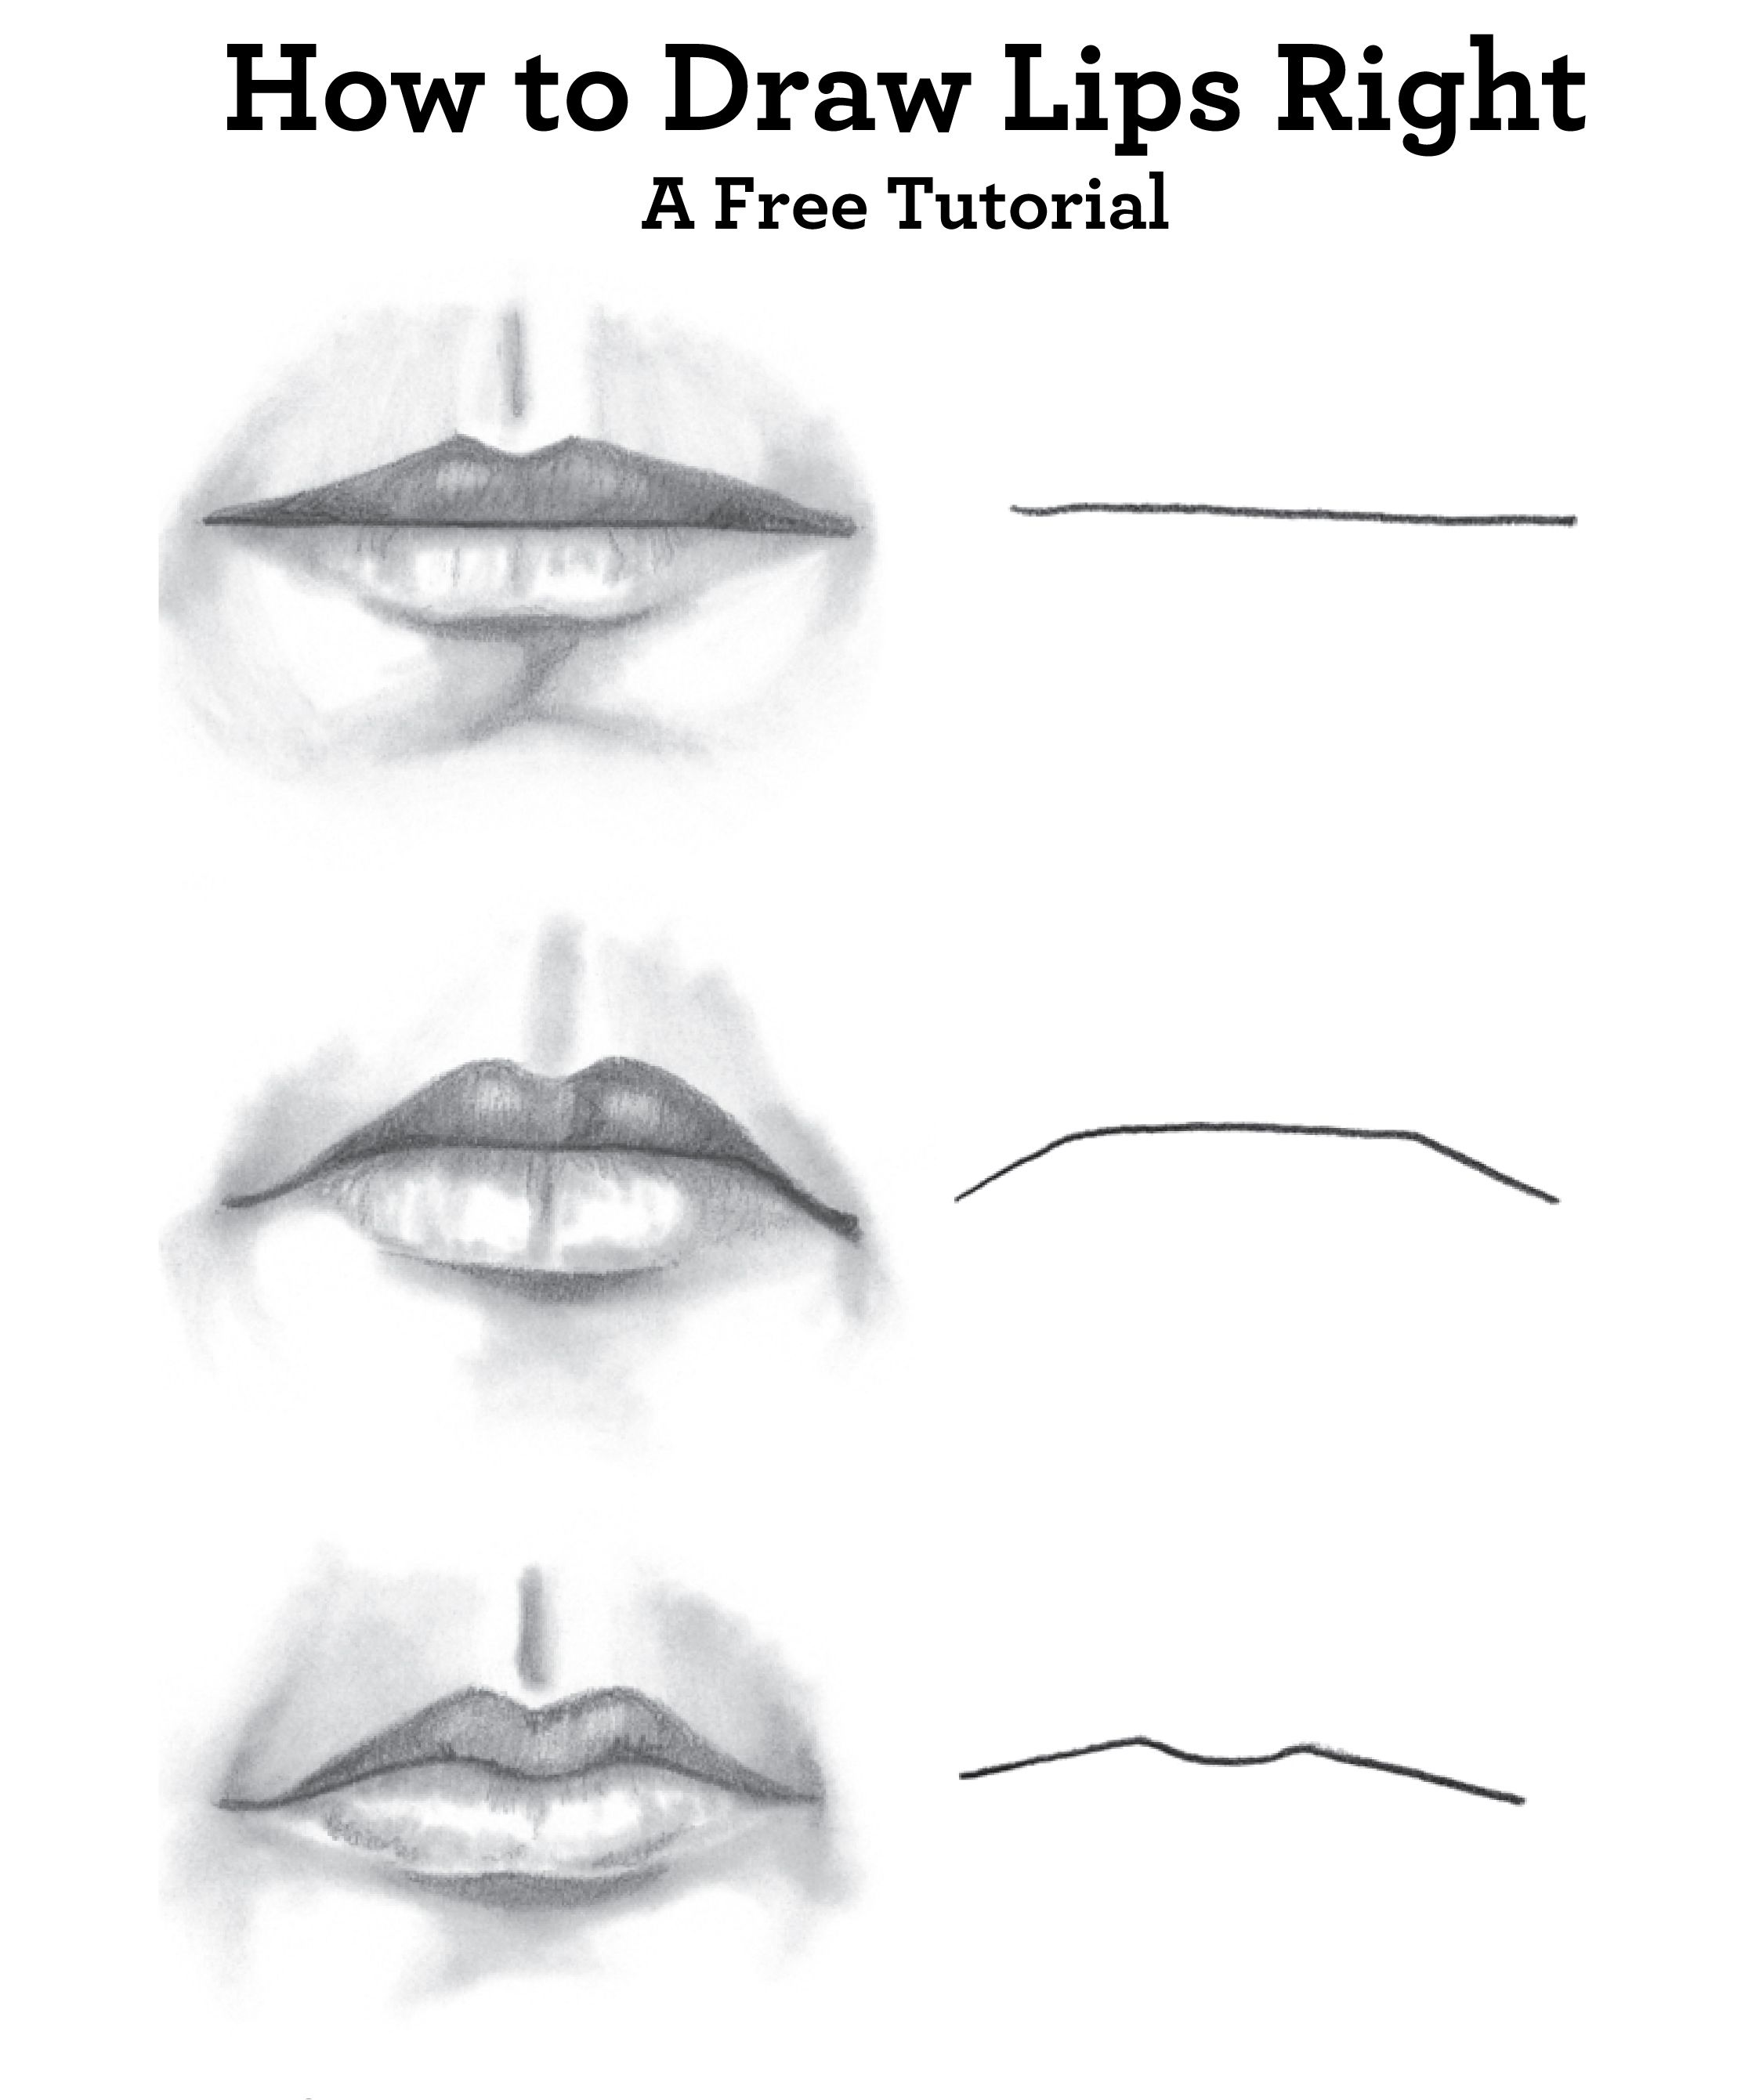 Guide To Drawing Faces: How To Draw A Face, Nose, And Lips